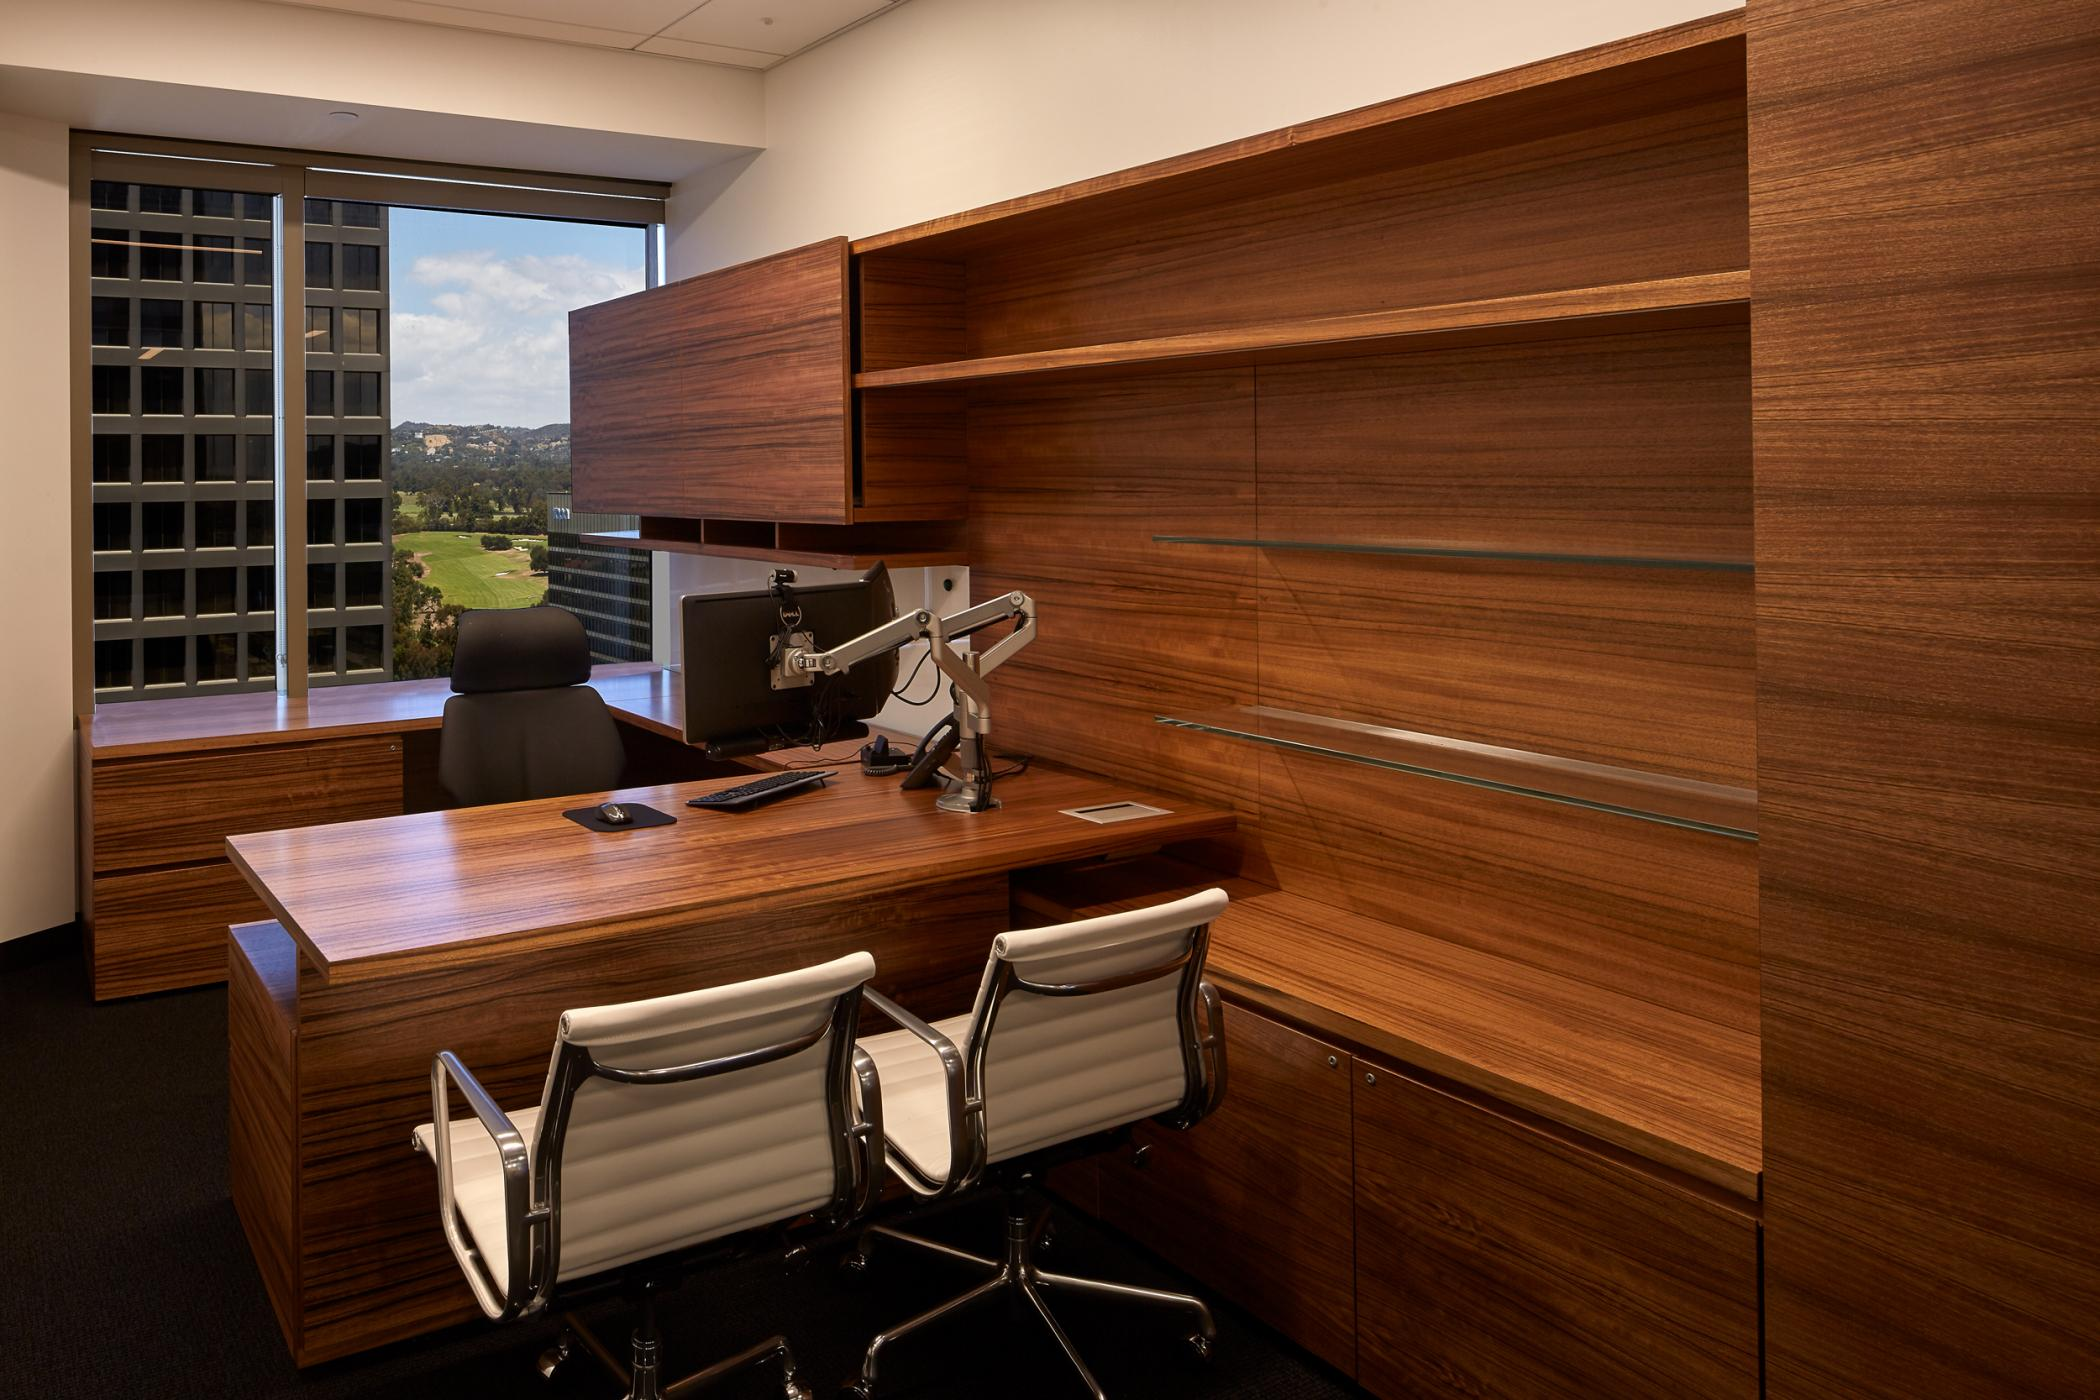 New Millennia offices integrate adjustable-height desking and floating glass shelves with horizontal-grain veneer casework.